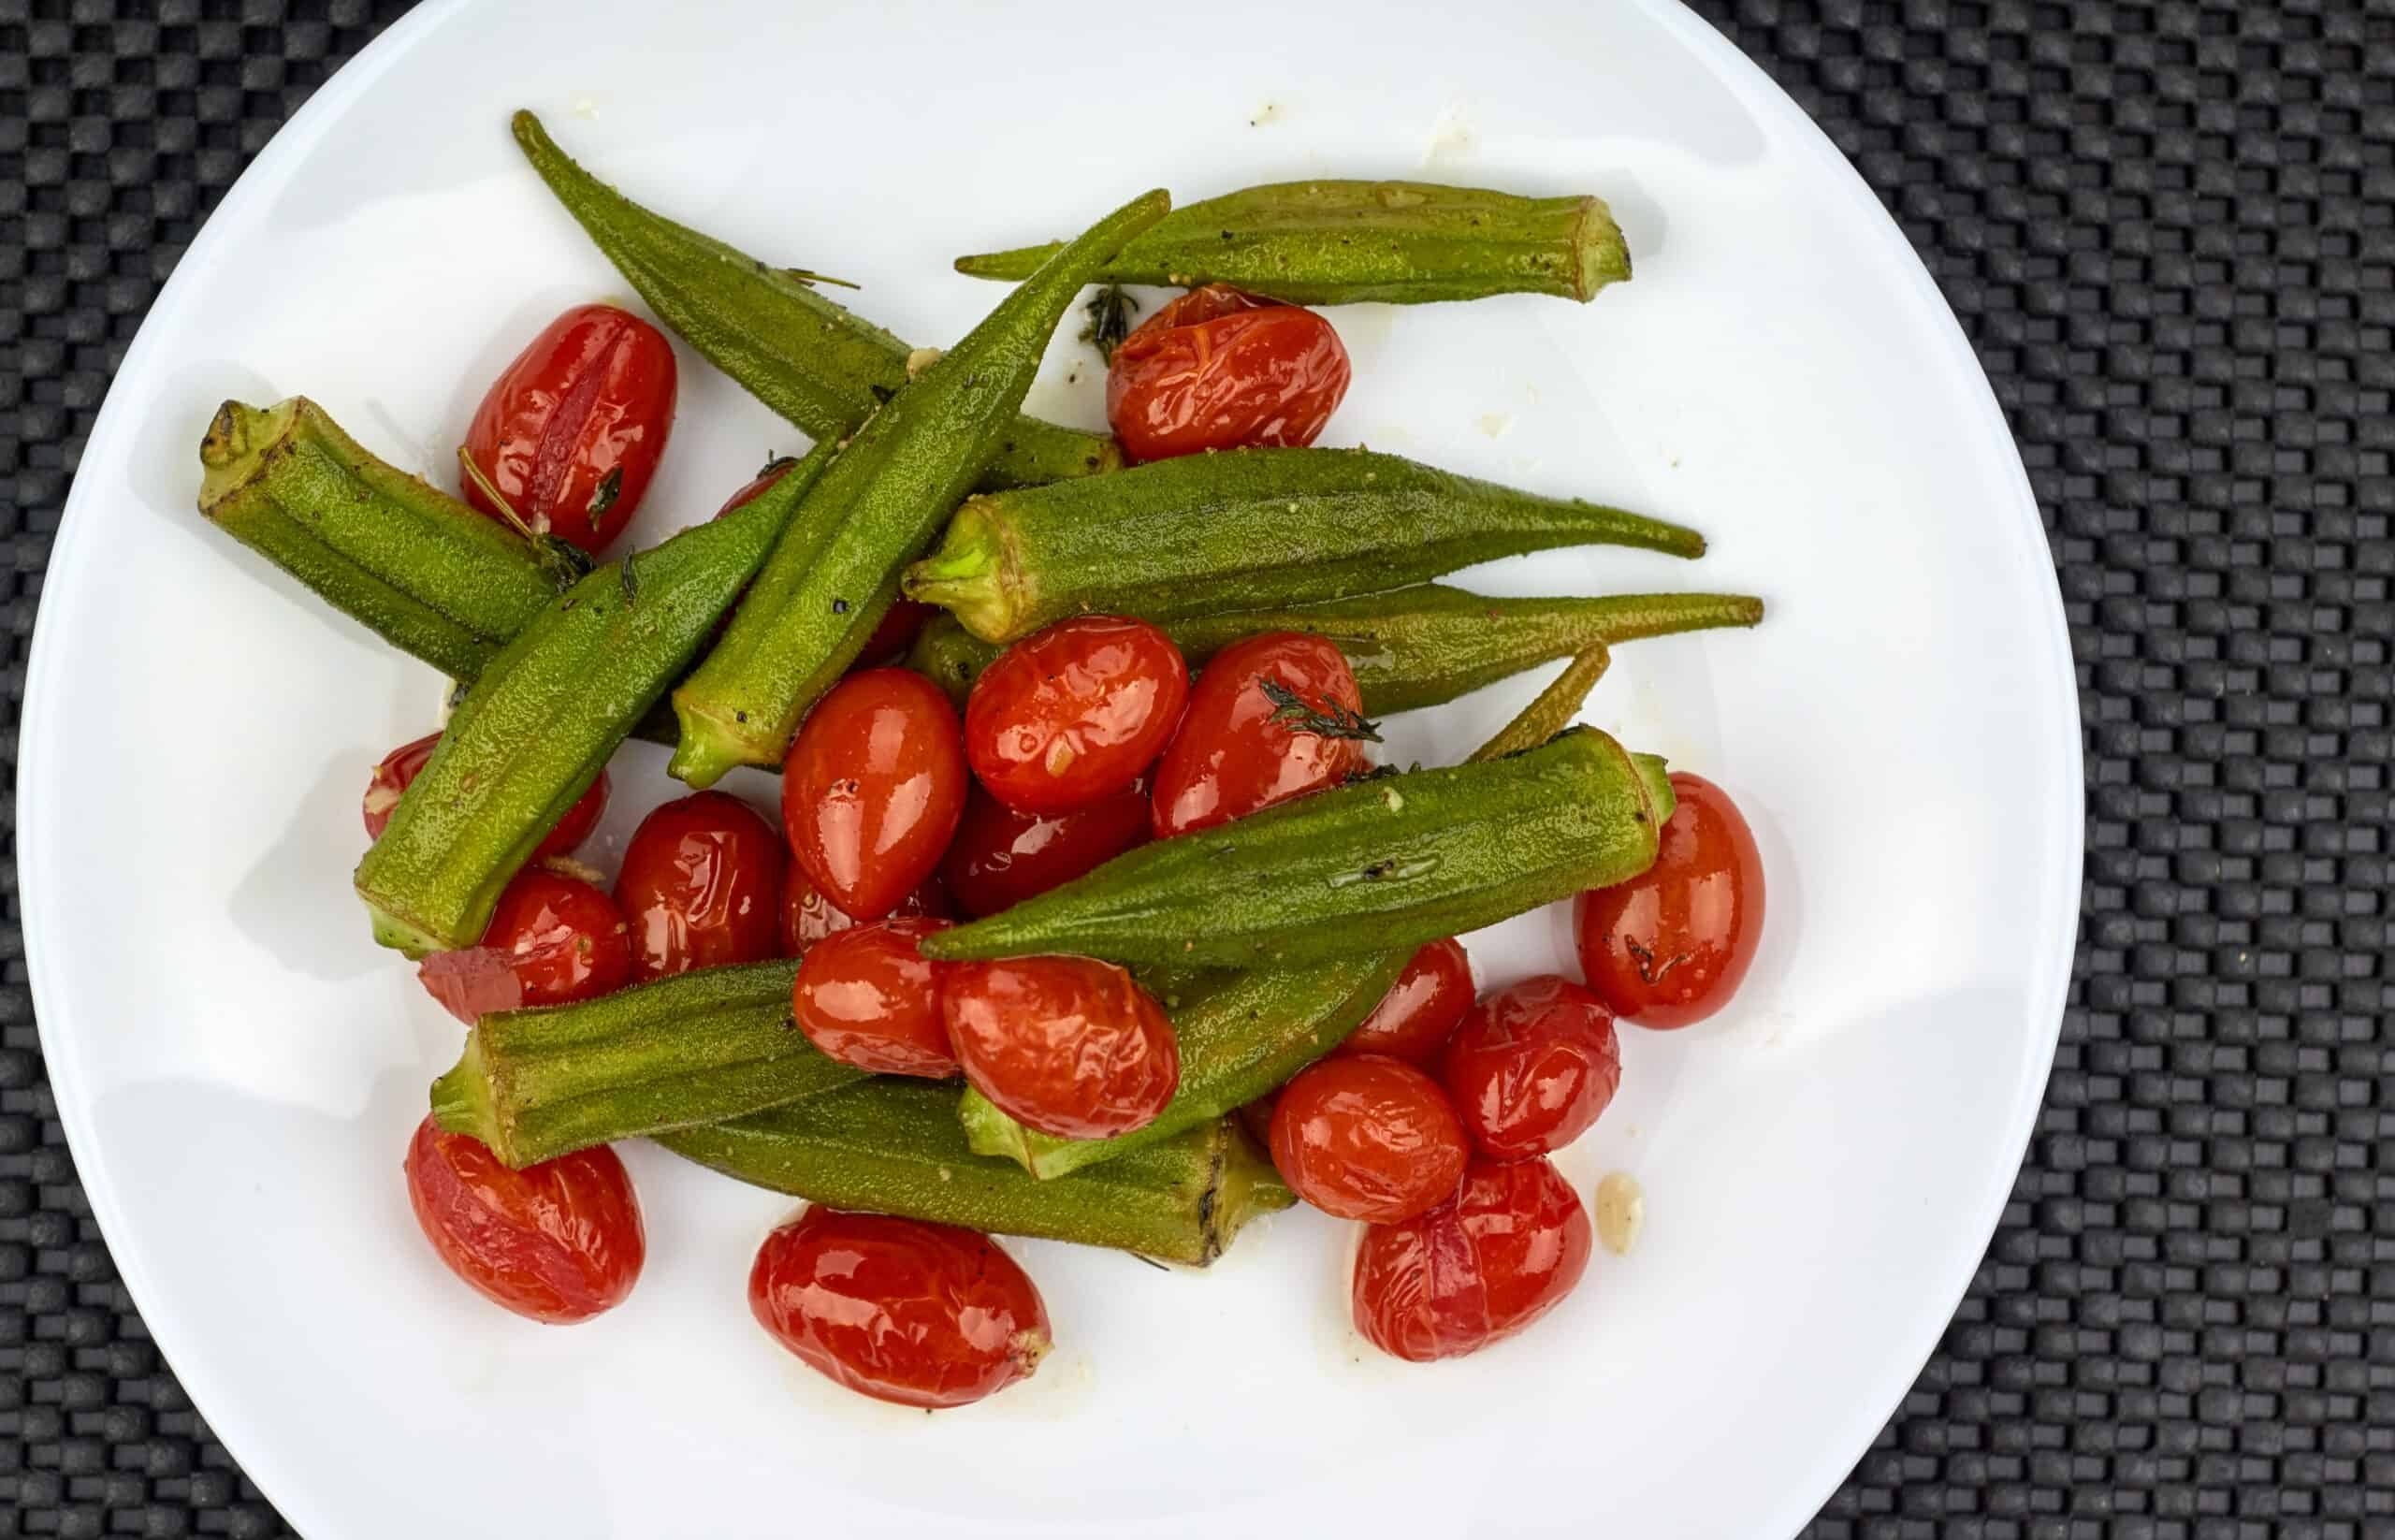 Okra with tomatoes and garlic